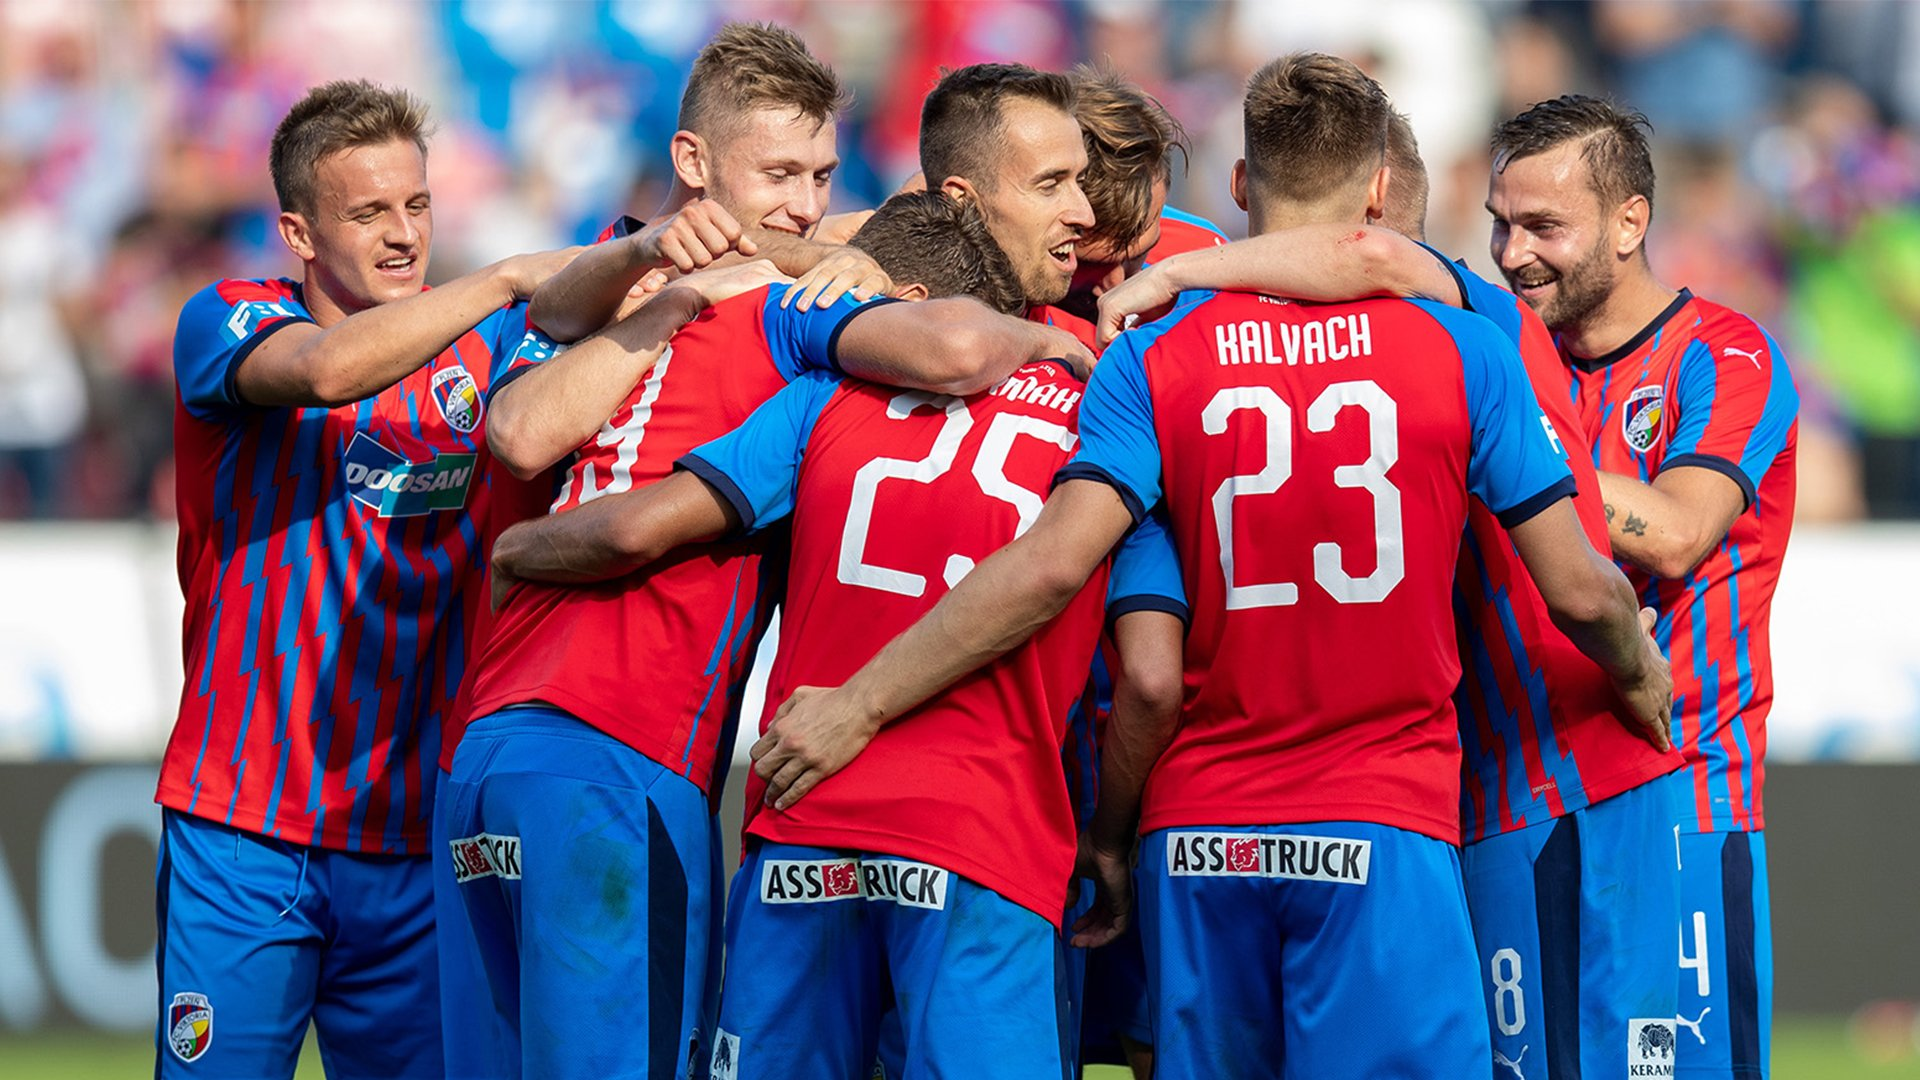 Plzeň dealt with Opava offensively and beat them 4-0